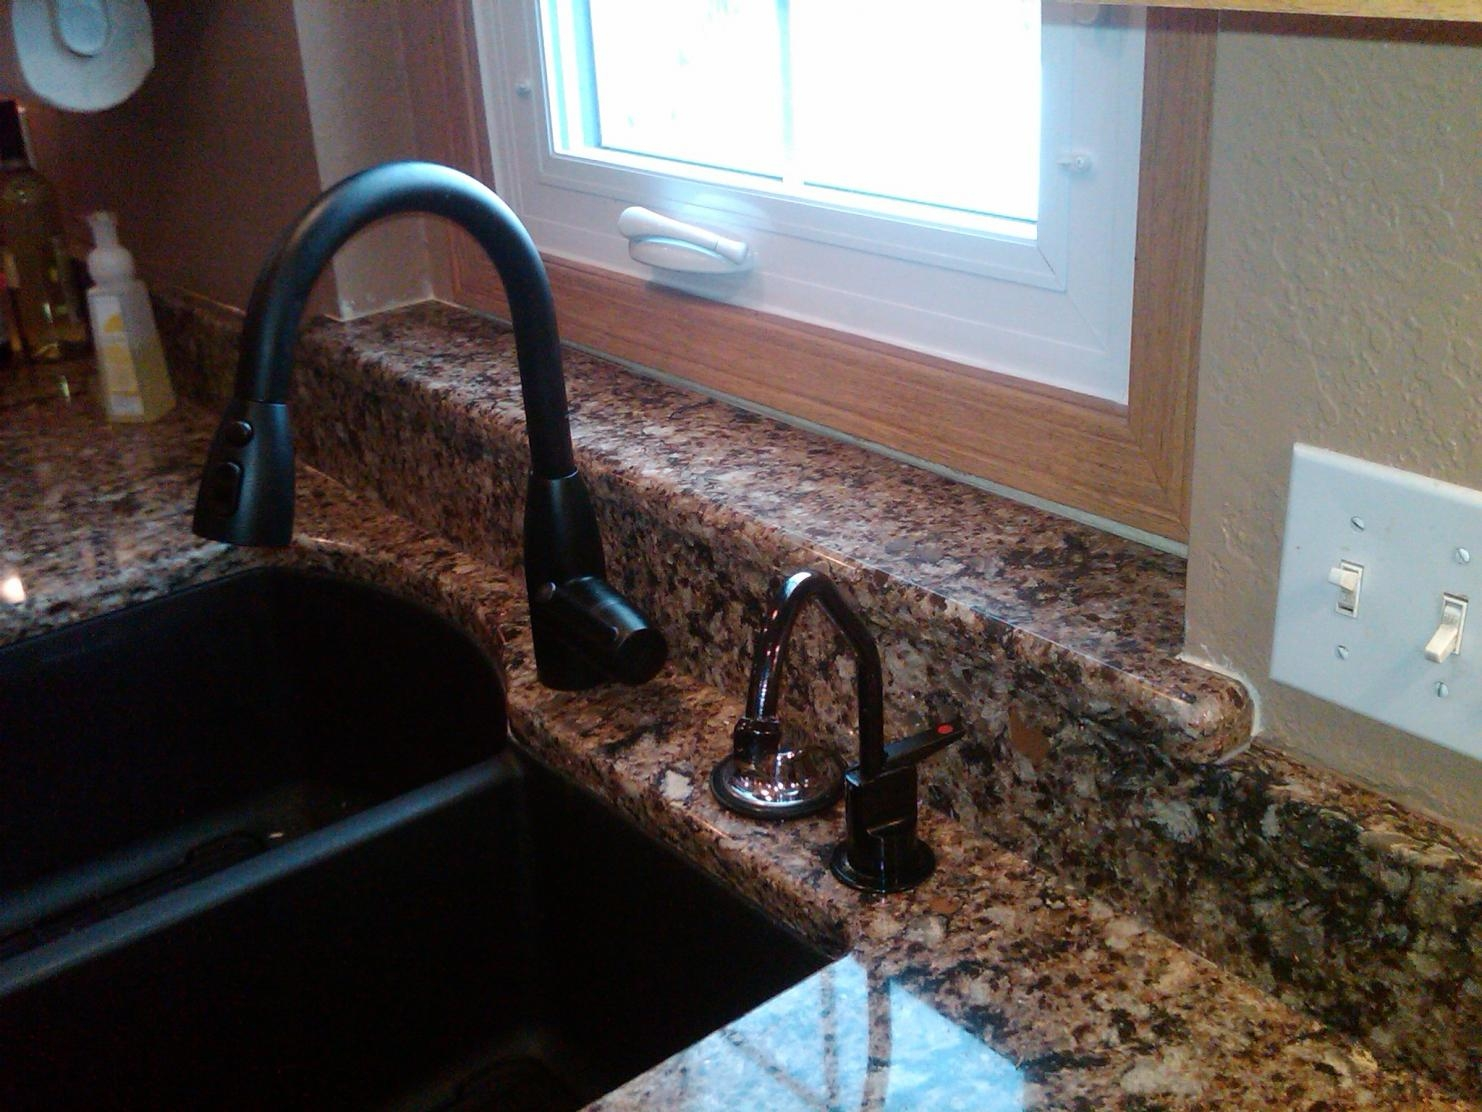 Ideas, best kitchen faucets for granite countertops best kitchen faucets for granite countertops faucet on granite countertops kitchens baths contractor talk 1482 x 1112  .